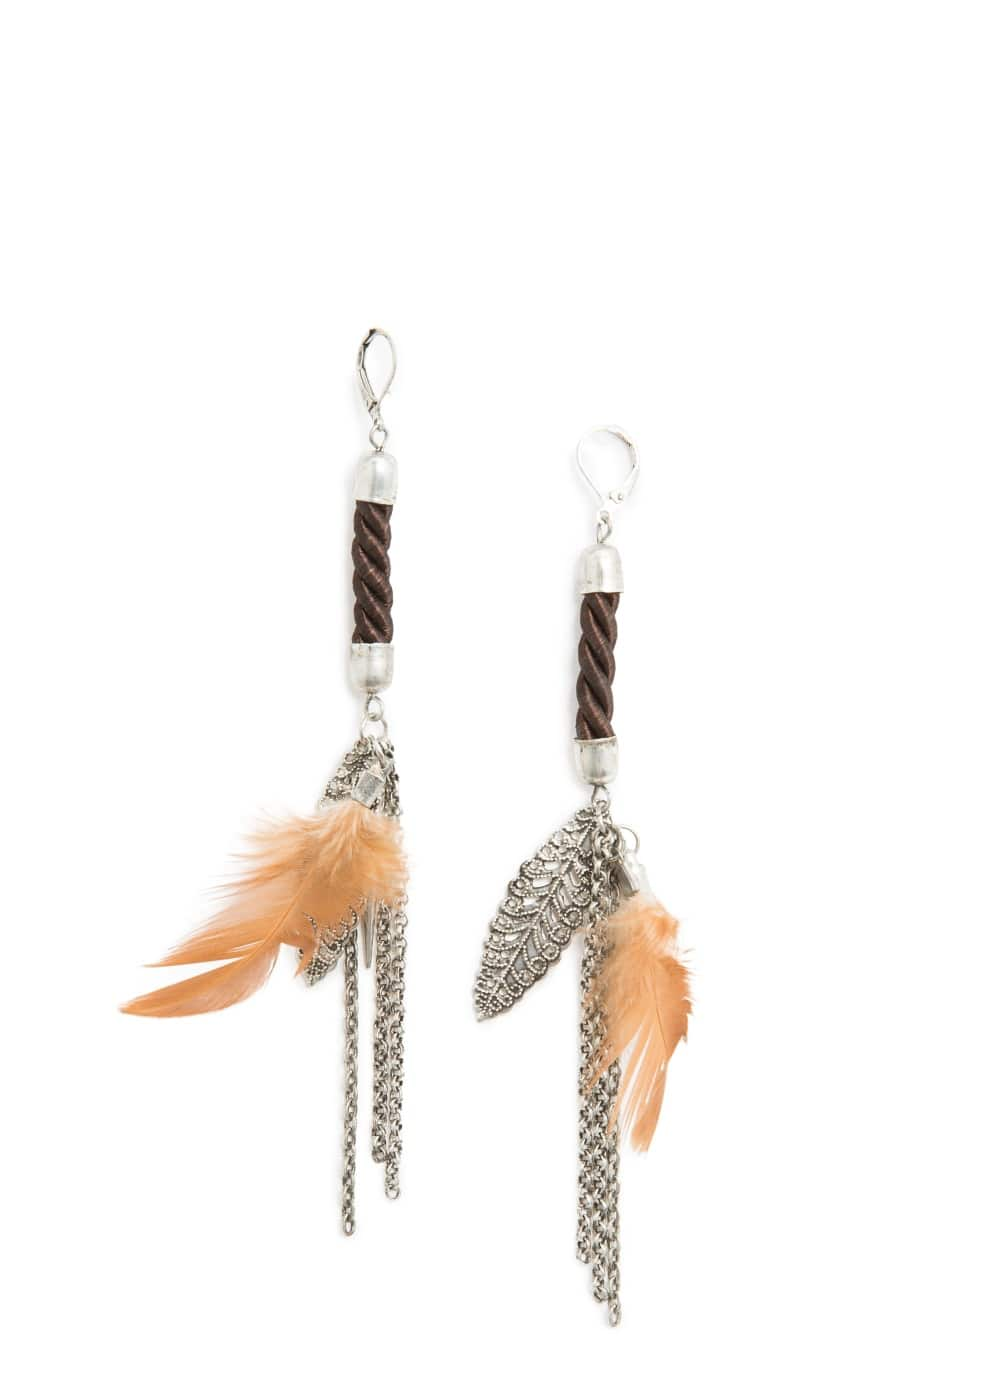 Fang cord earrings